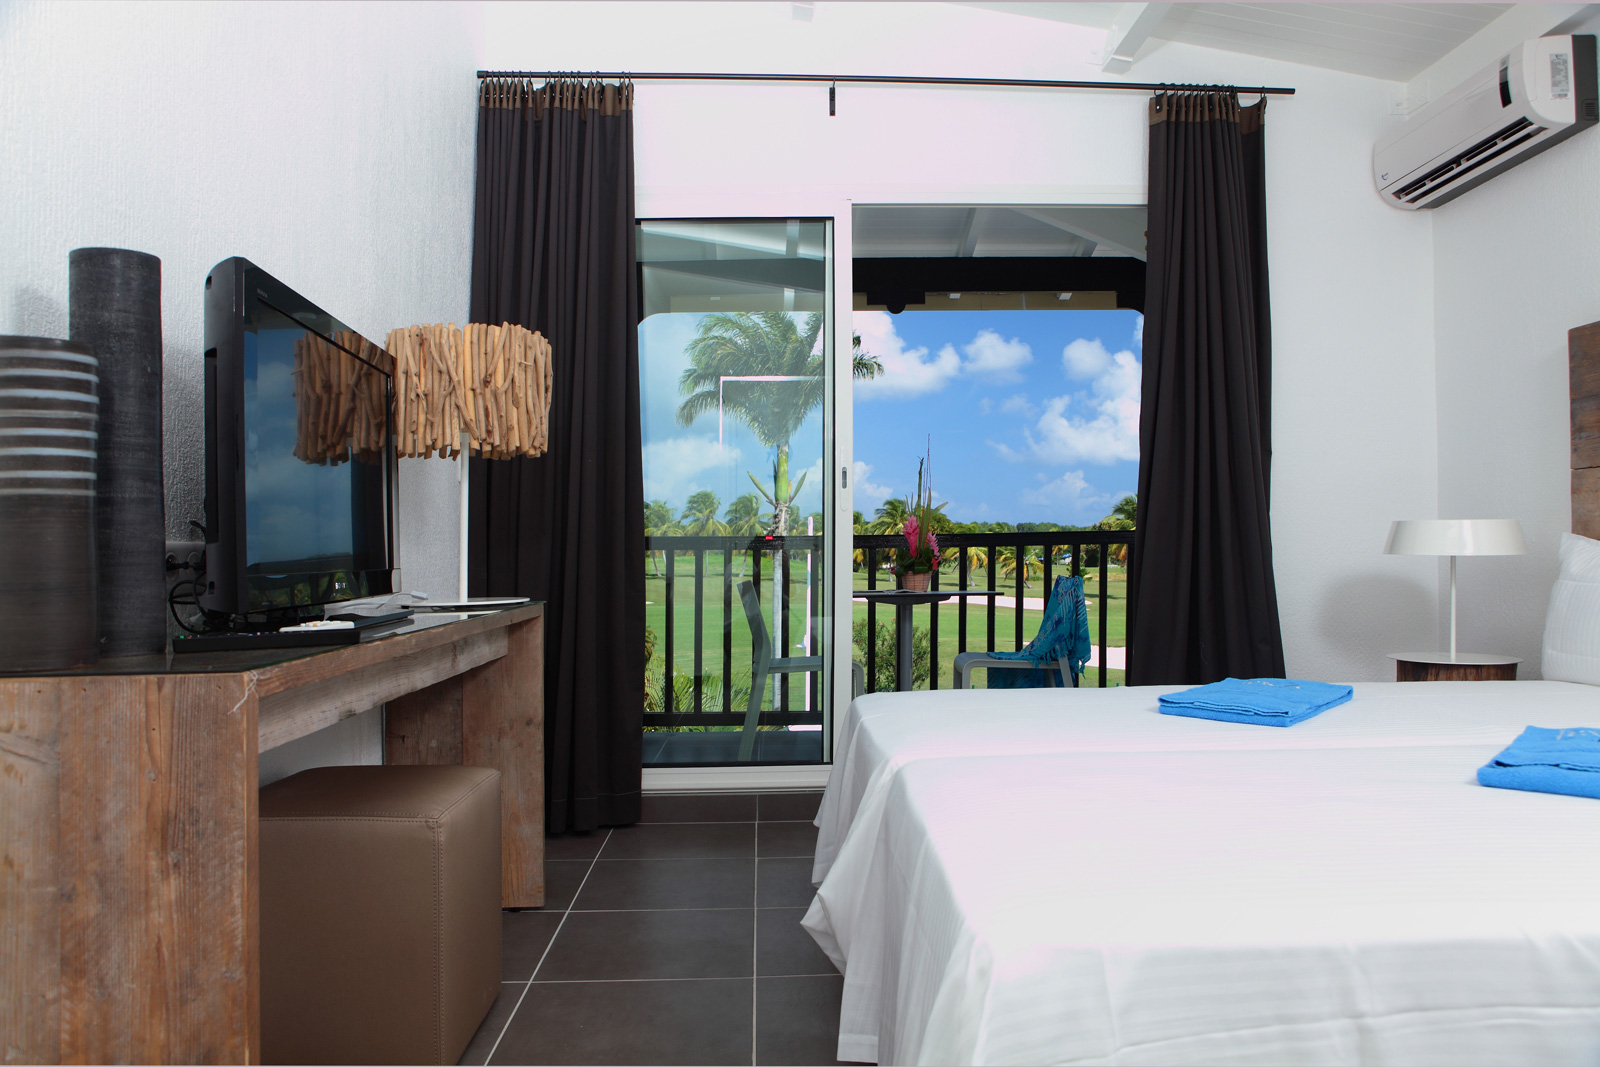 Bwa Chik hotel and Golf, chambre, Hebergement, logement, hotel guadeloupe,  hotel golf, hotel saint francois, sejour antilles, voyage antilles, hebergement antilles, hebergement caraibes, sejour caraibes, voyage caraibes,